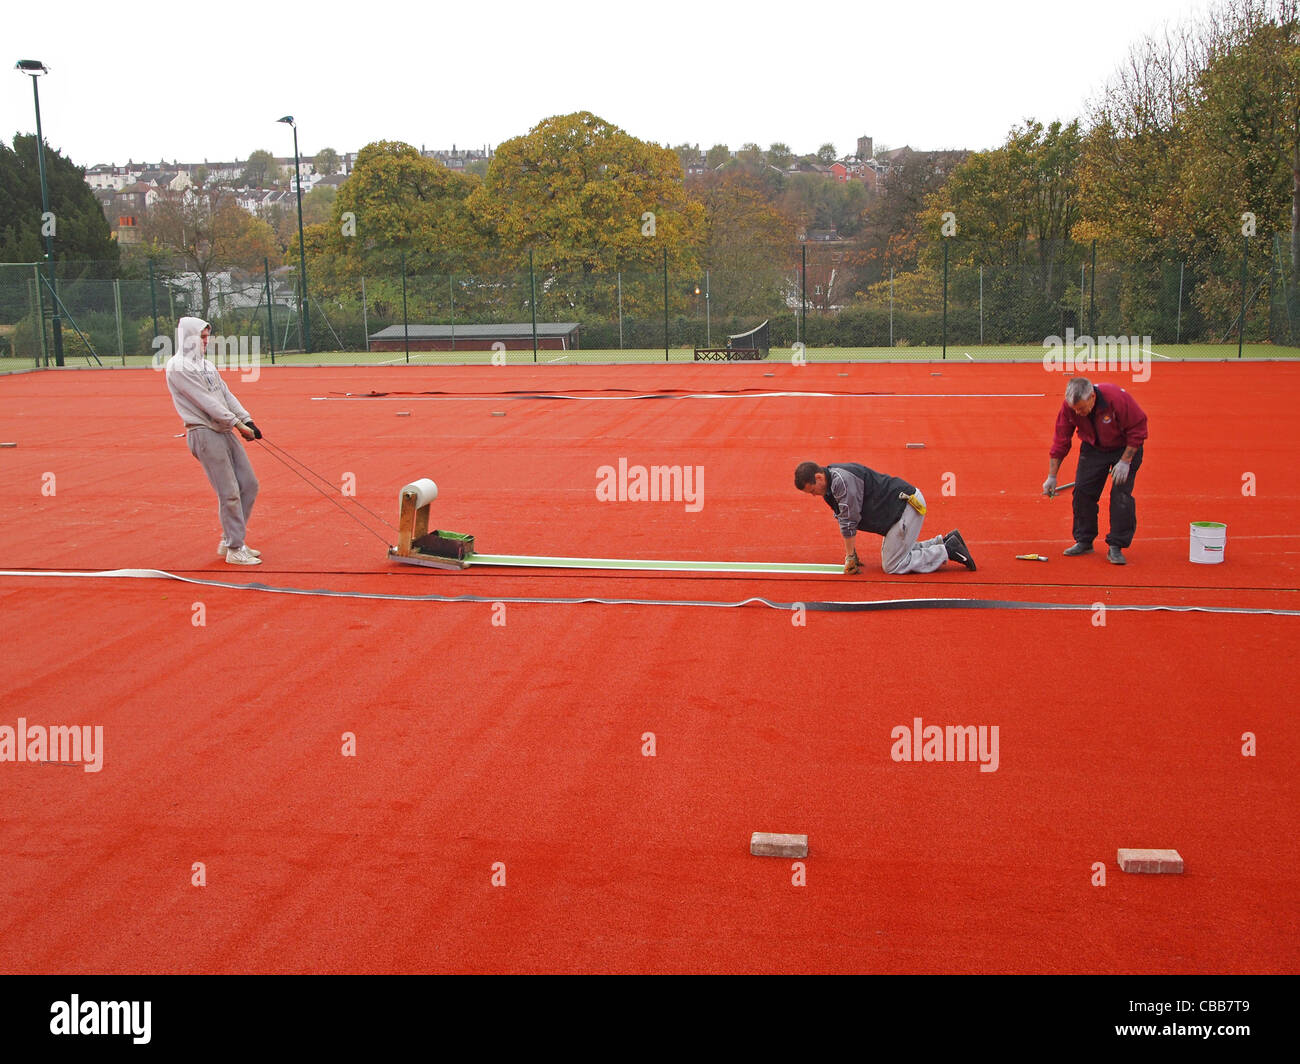 Construction of synthetic clay tennis courts - cutting in the white 'lines' into the stability base - Stock Image